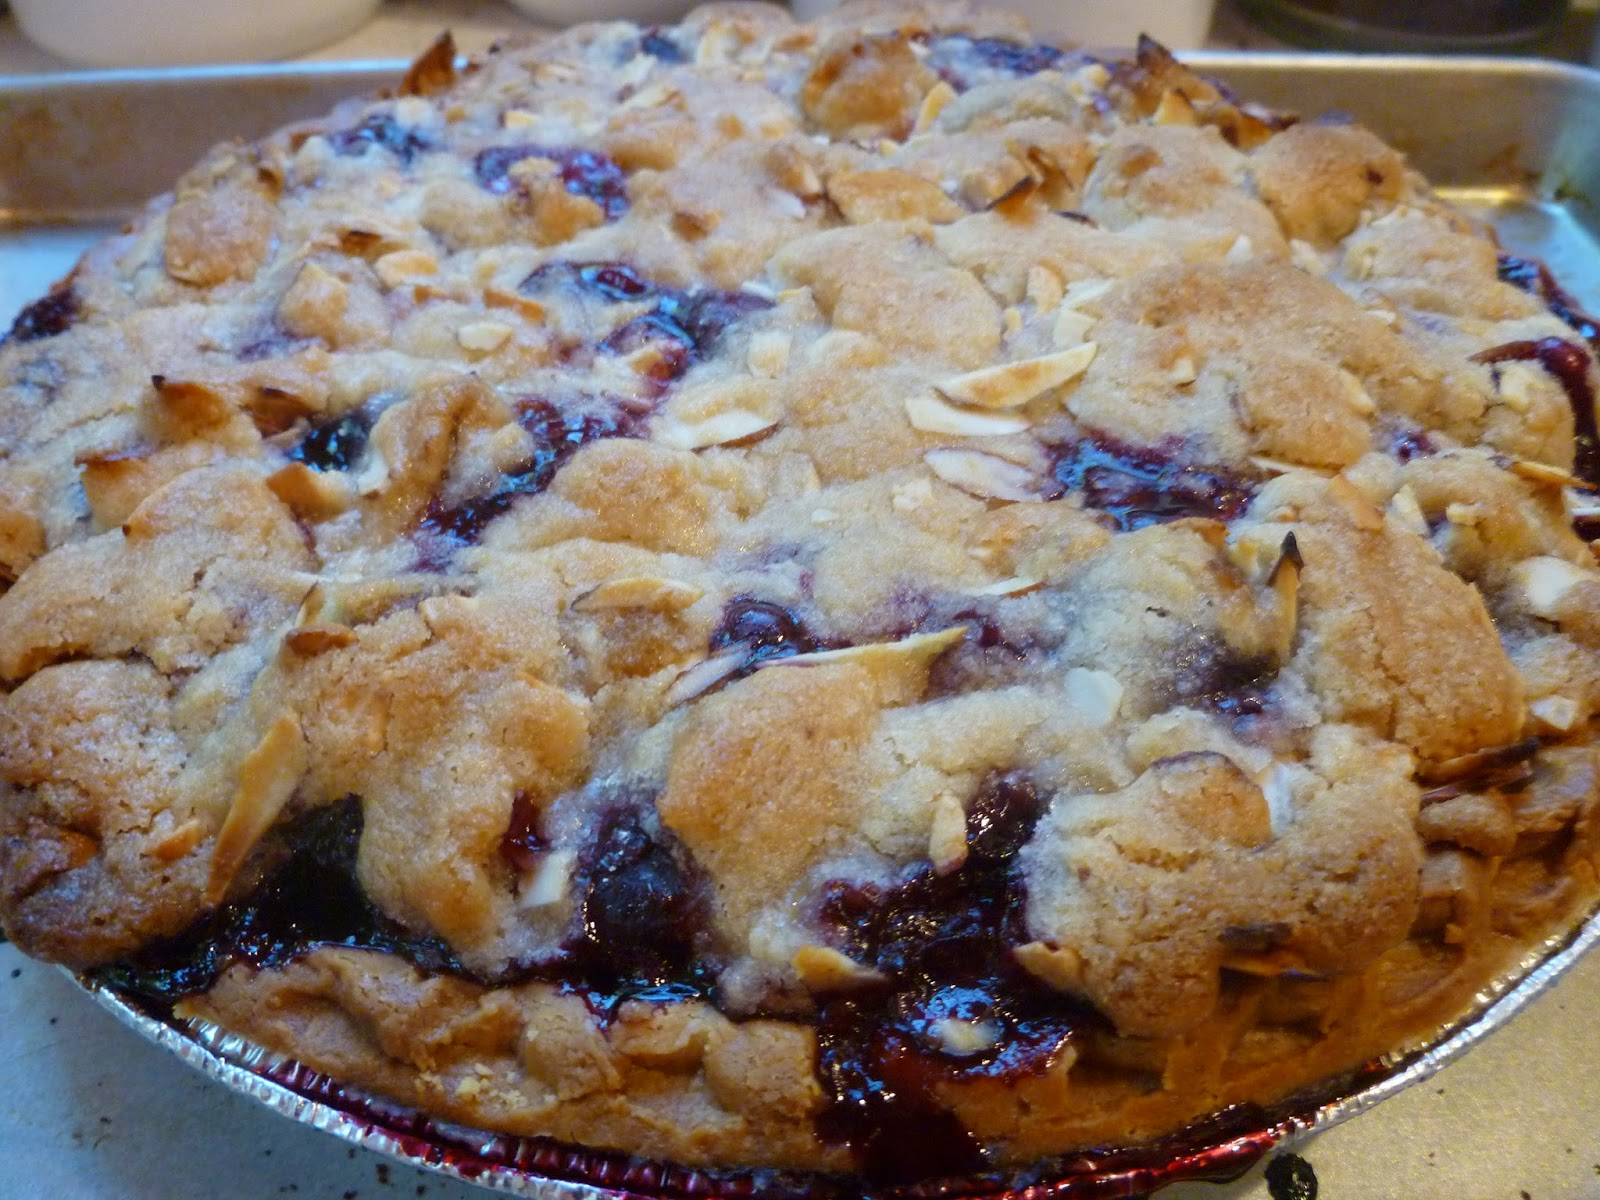 ... pie cinnamon pecan cherry pie cherry pie with streusel sour cherry pie